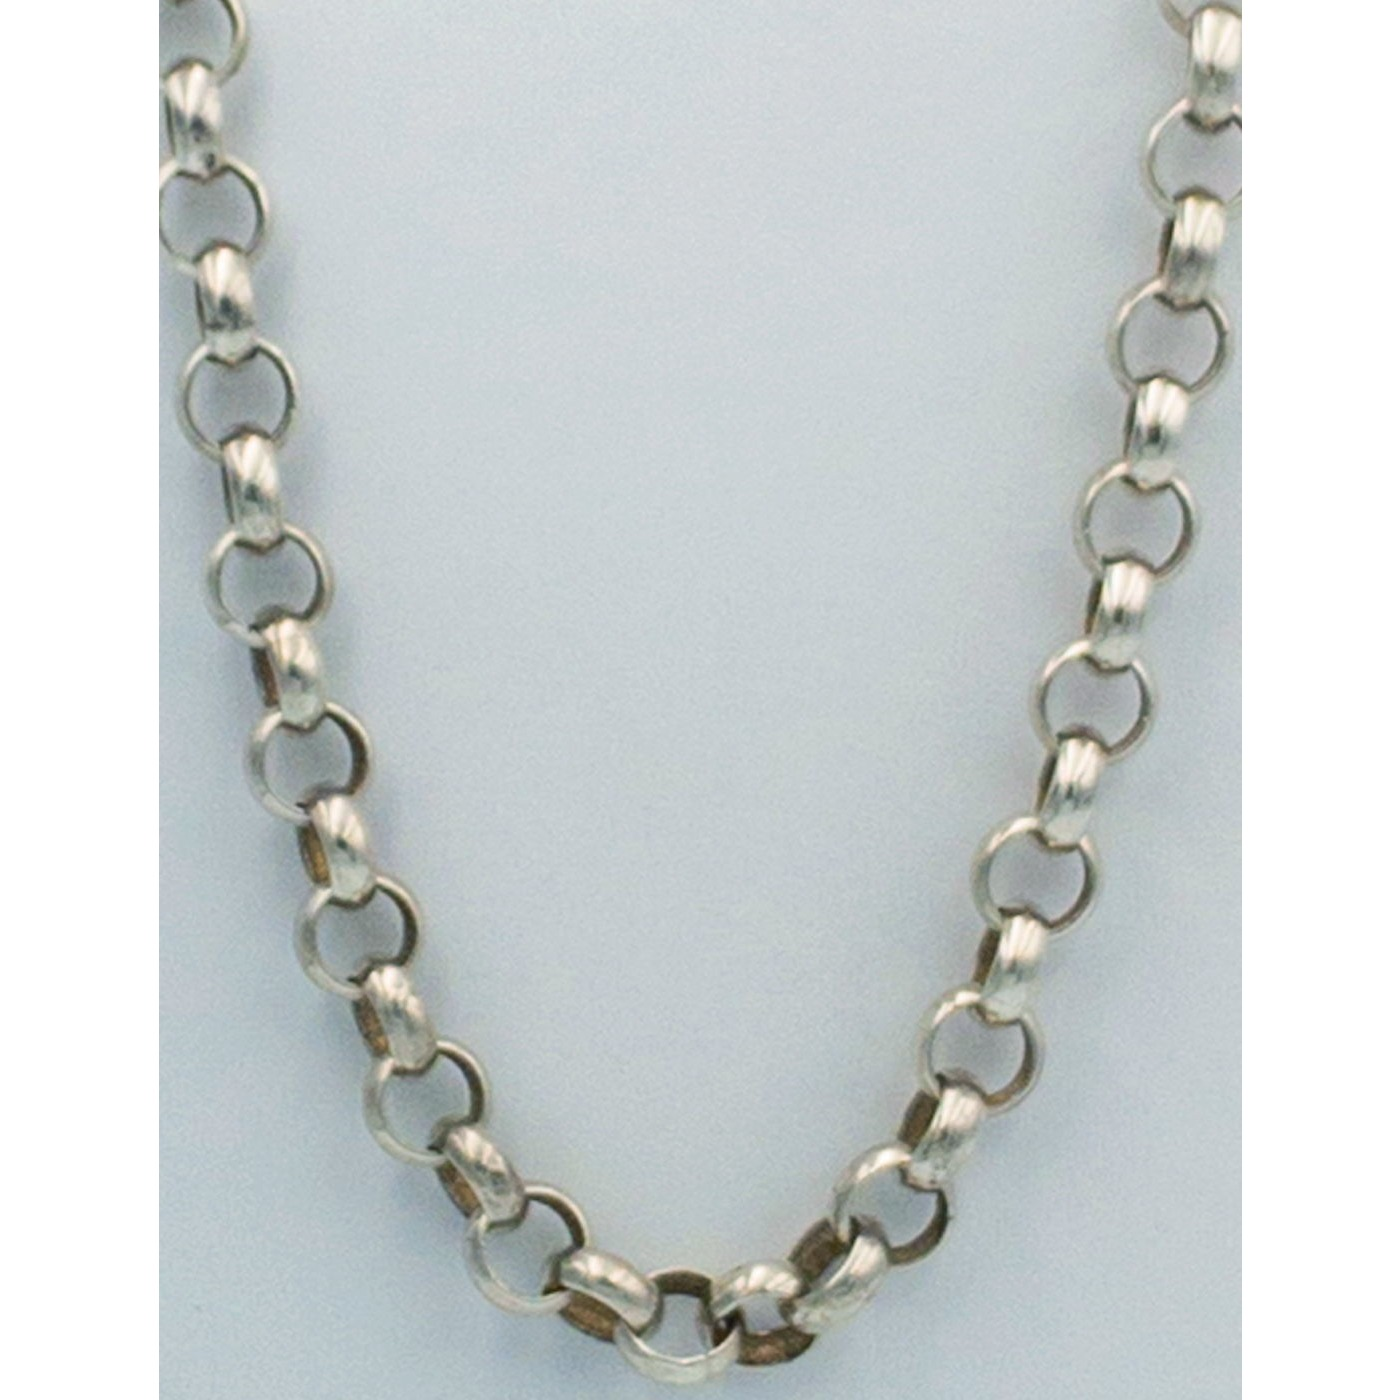 Fabulous Fat Rolled Round Medium Width Links Antique English Silver Chain